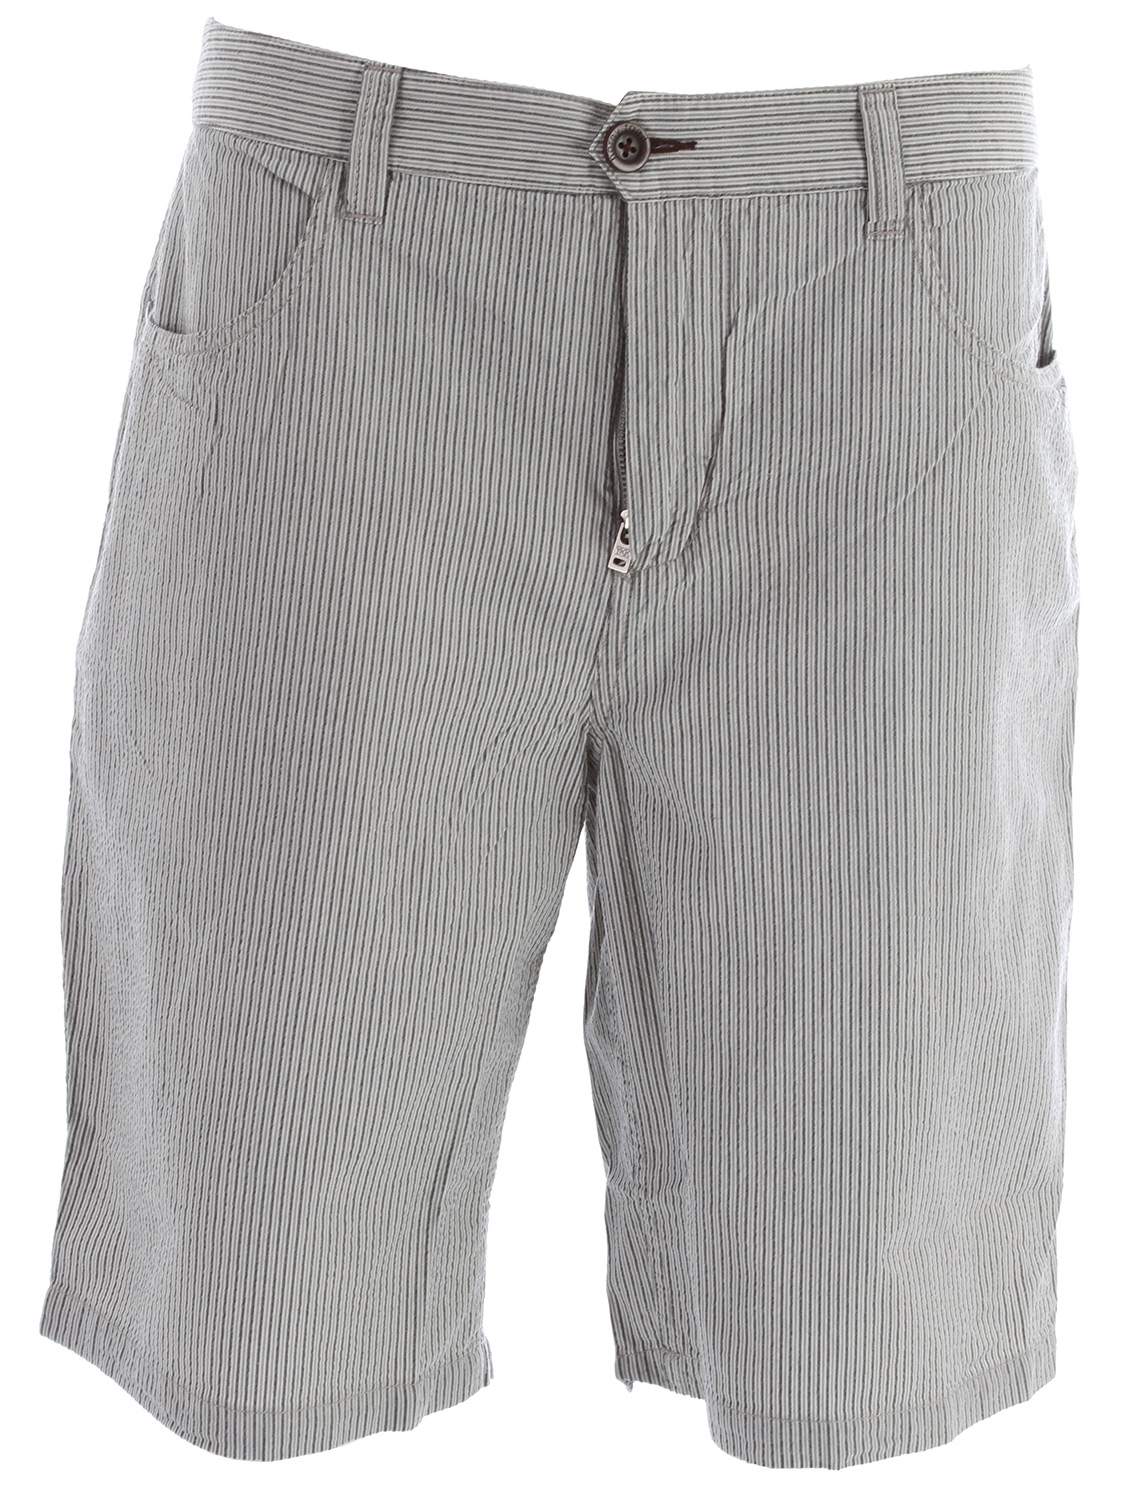 Key Features of the Horny Toad Seersucka Shorts: Fabric: Seersucka Is 100% Organic Cotton Zip Fly With Button Closure Drop-In Front Pockets, One With Pocketin-Pocket Double-Welt Back Pockets With Button Closure 11? Inseam - $69.00